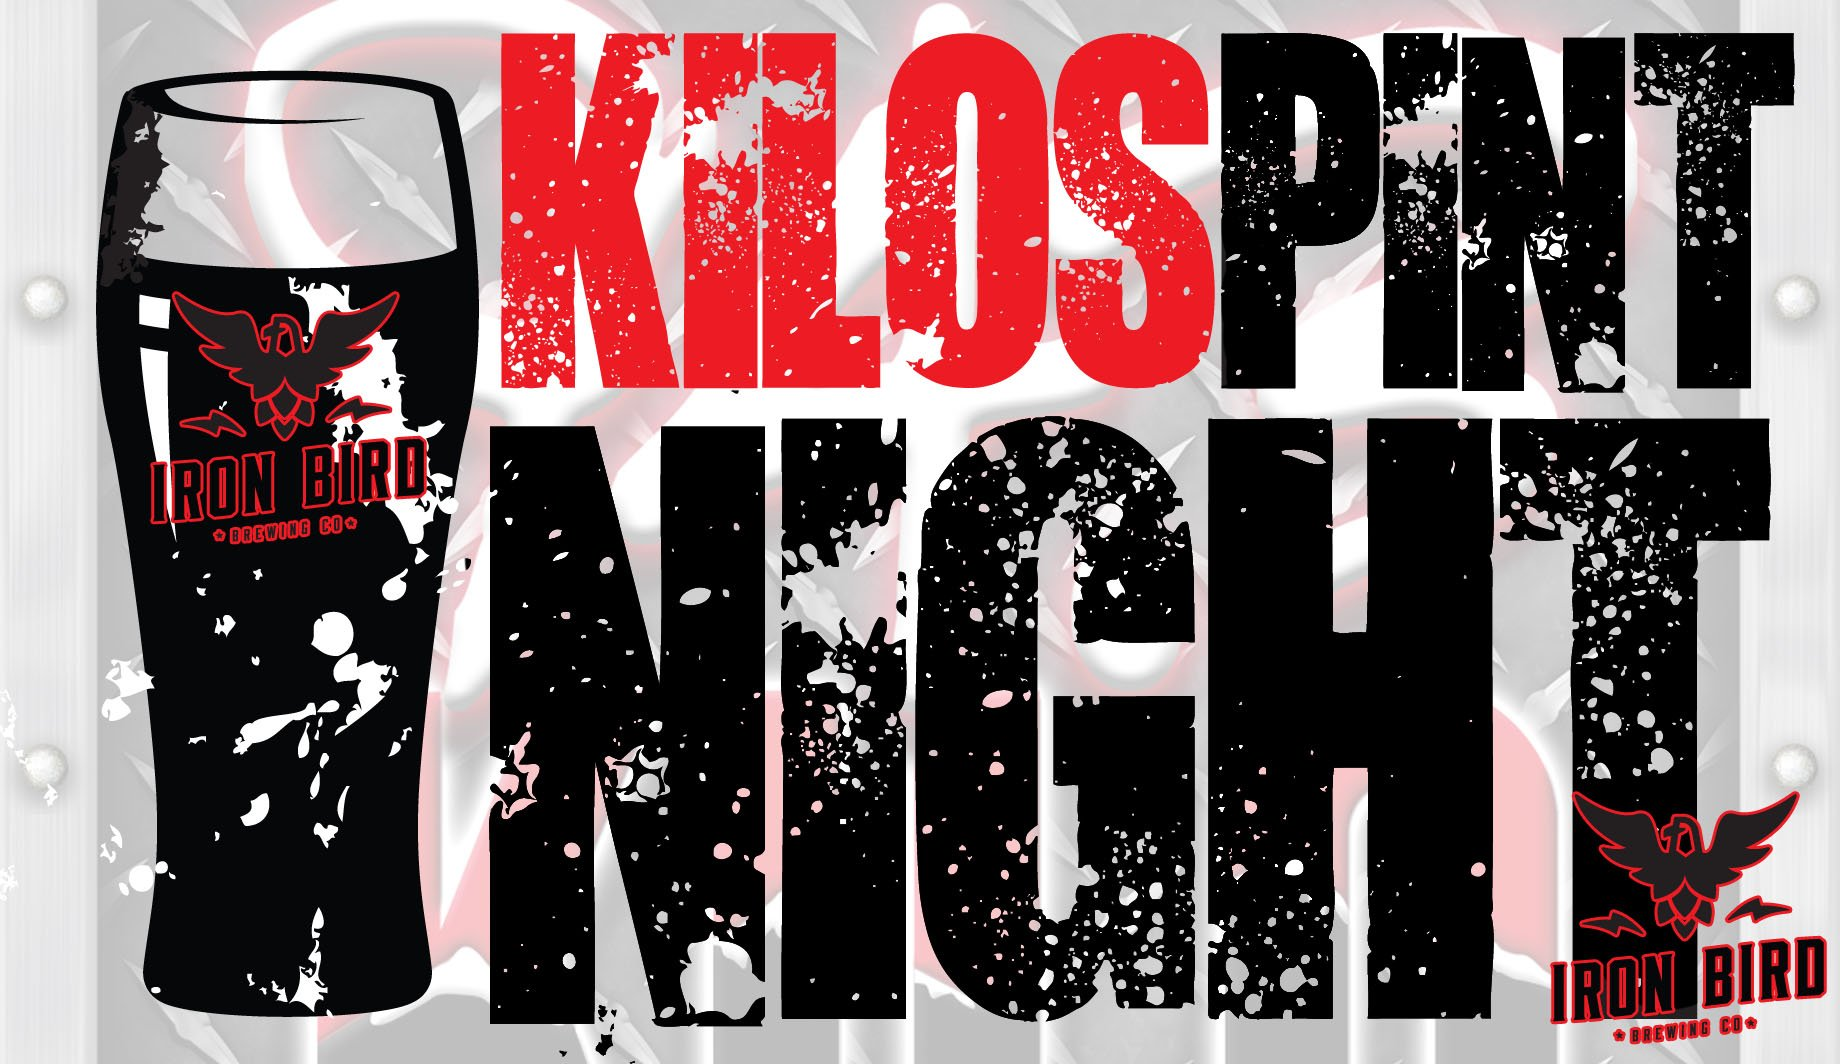 -----MAIN BANNER HIGH RES KILO---